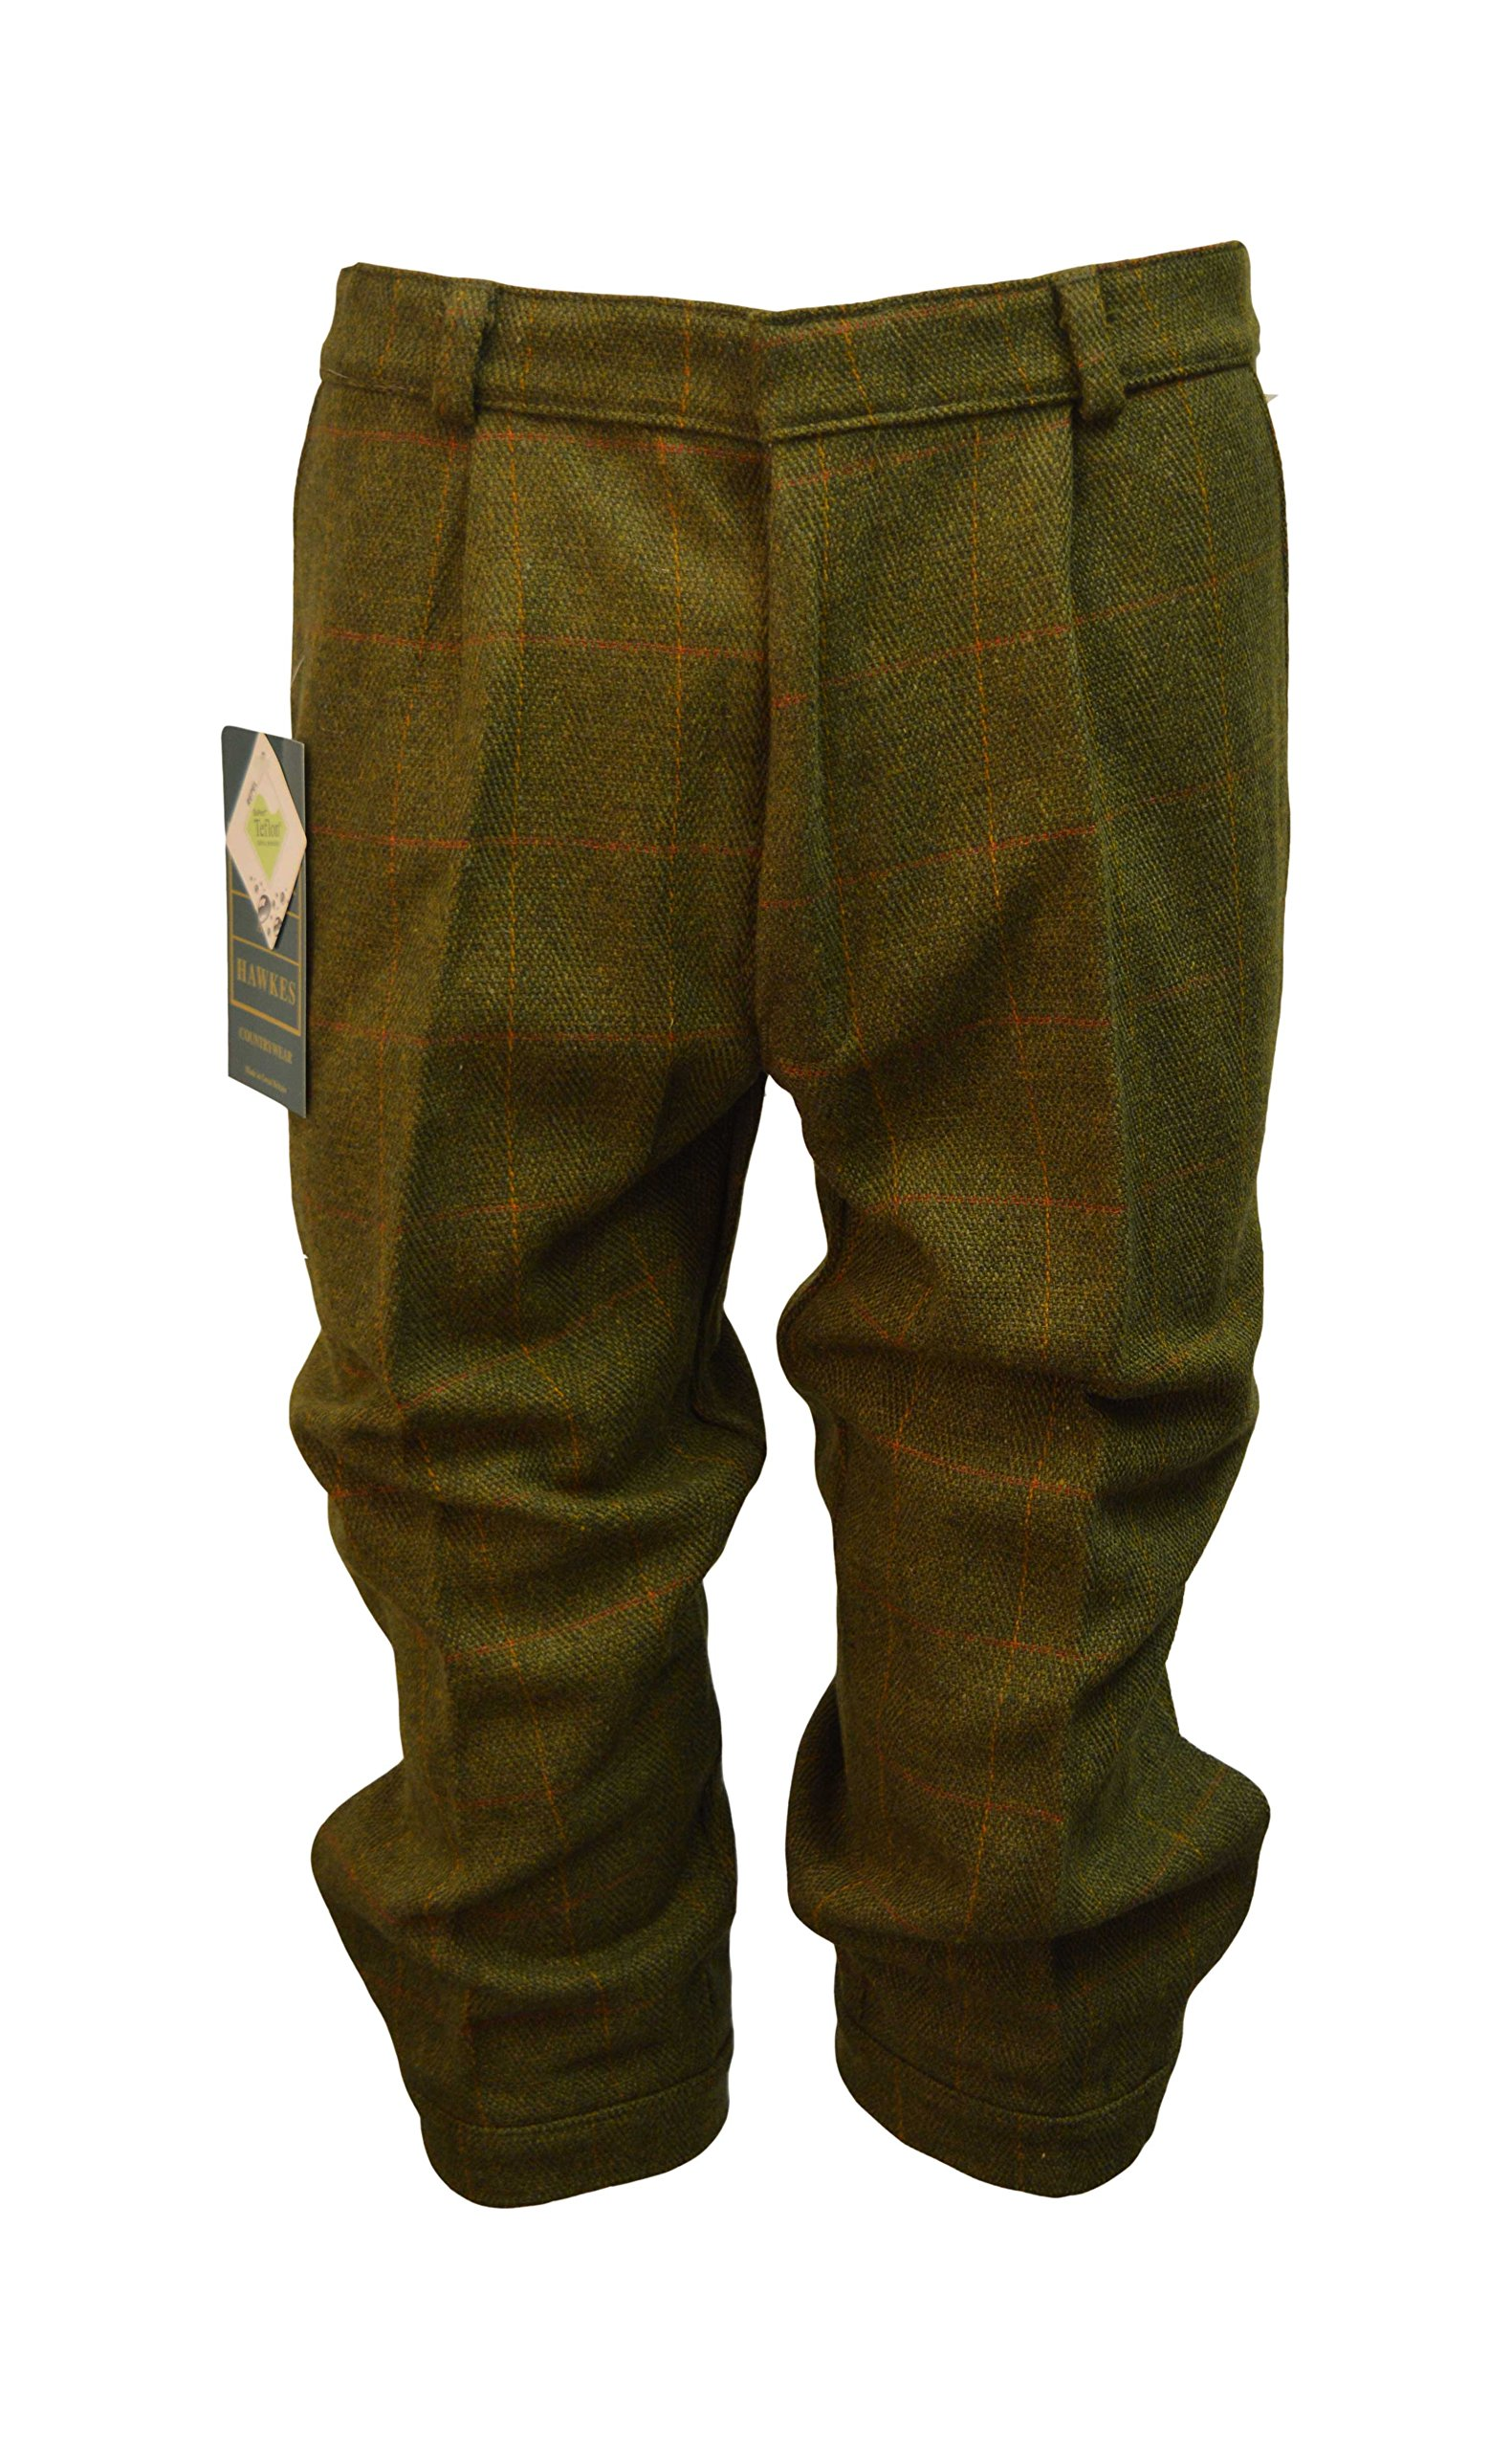 Walker and Hawkes Men's Derby Tweed Shooting Plus Fours Breeks Trousers 40 Dark Sage